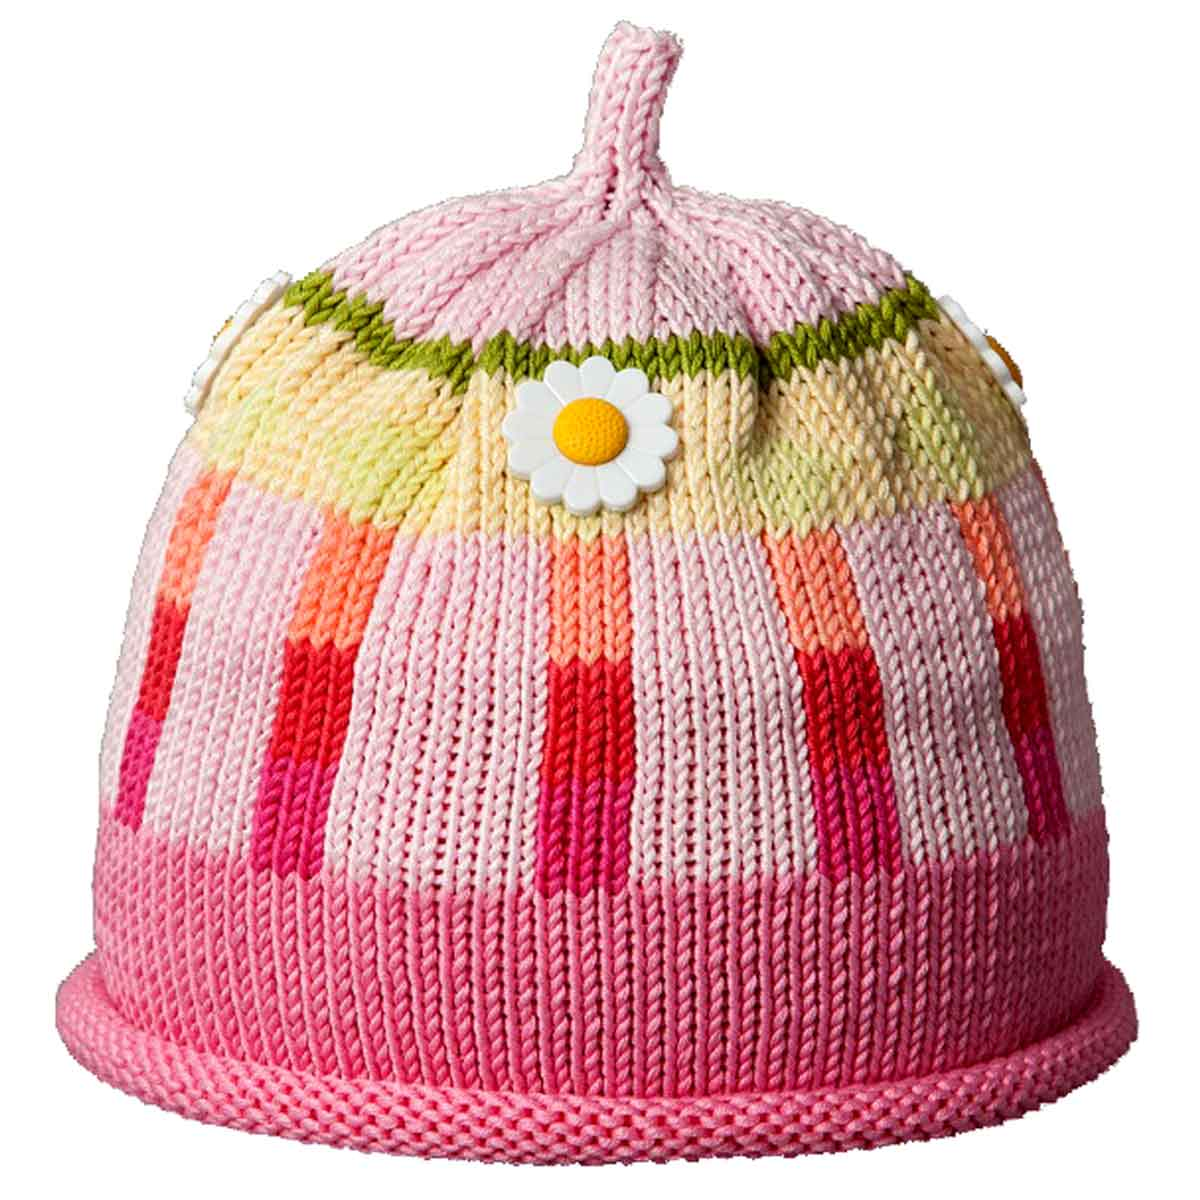 Daisies flowers knit hat margareta horn design multi tone pink knit hat with rolled brim has vertical oxford stripes and decorated with izmirmasajfo